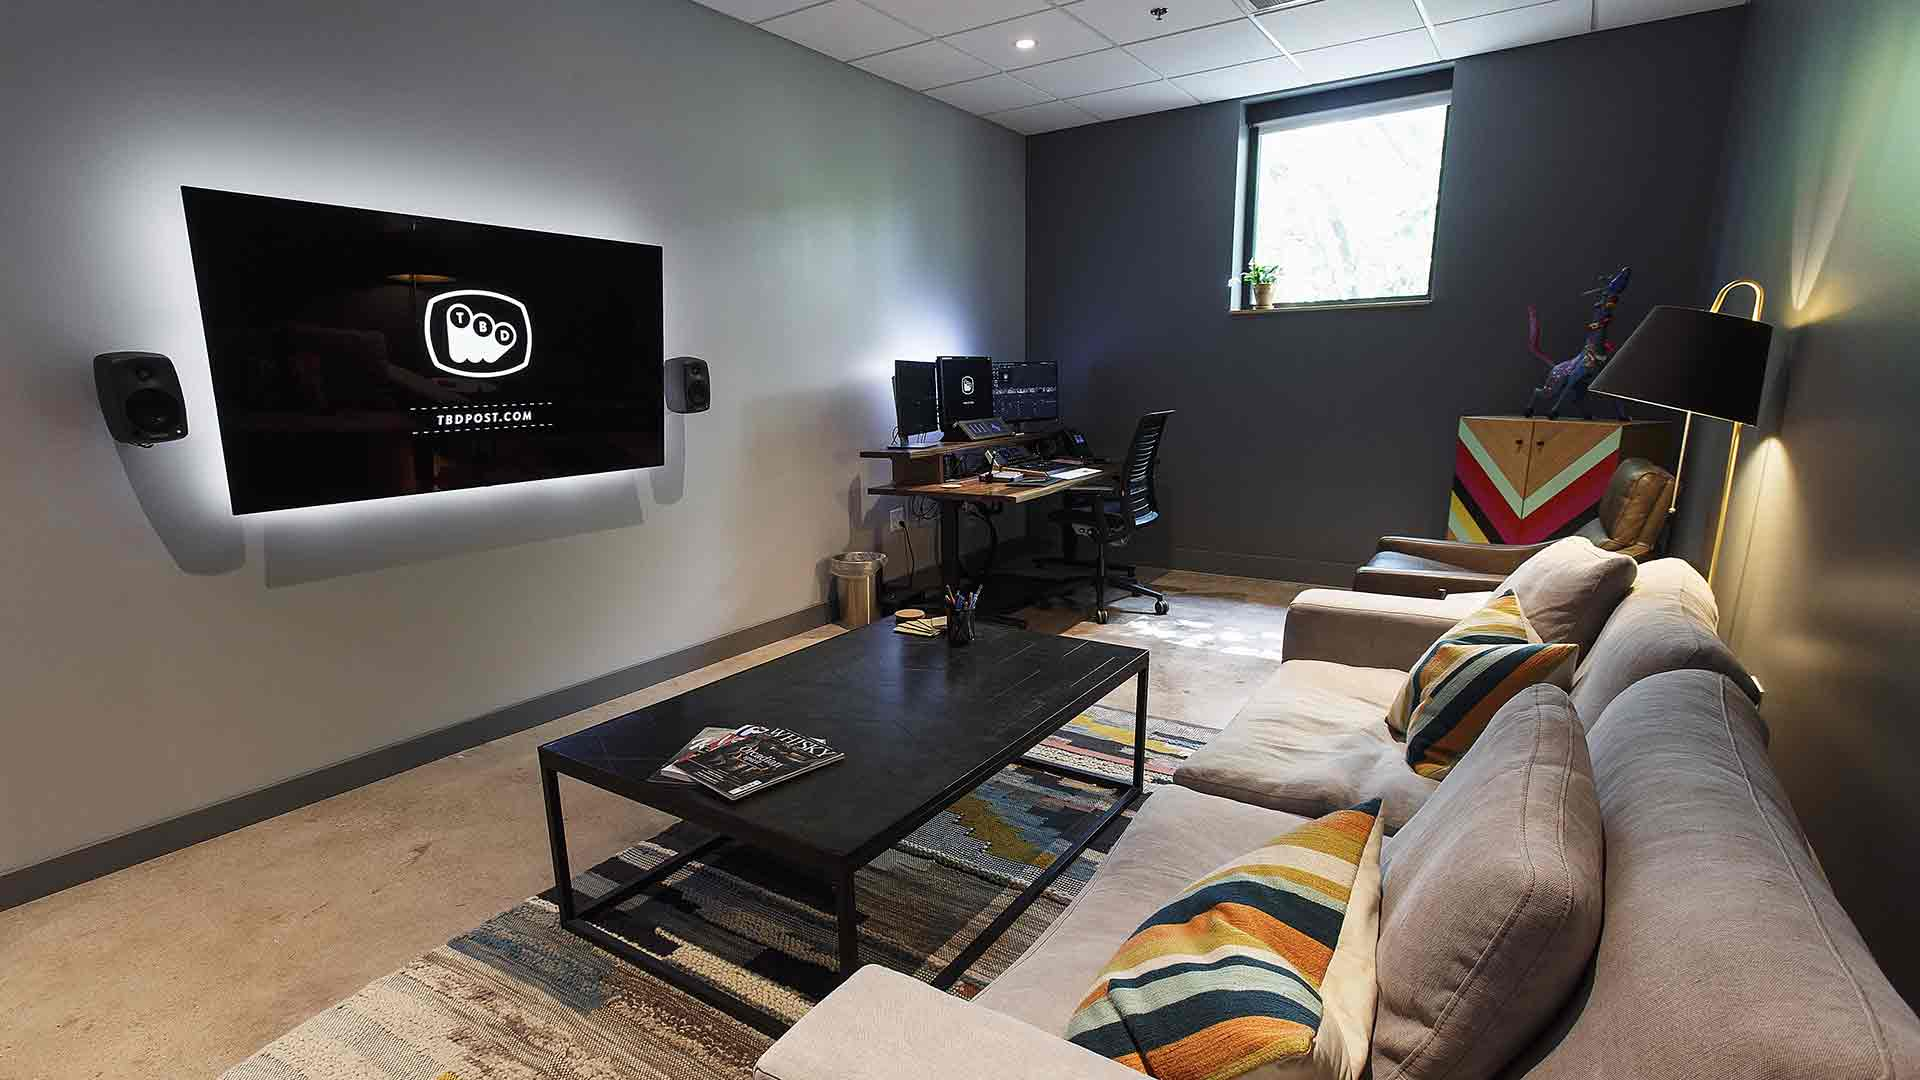 indoor wall room television floor table desk computer living chair computer monitor couch coffee table design interior furniture area